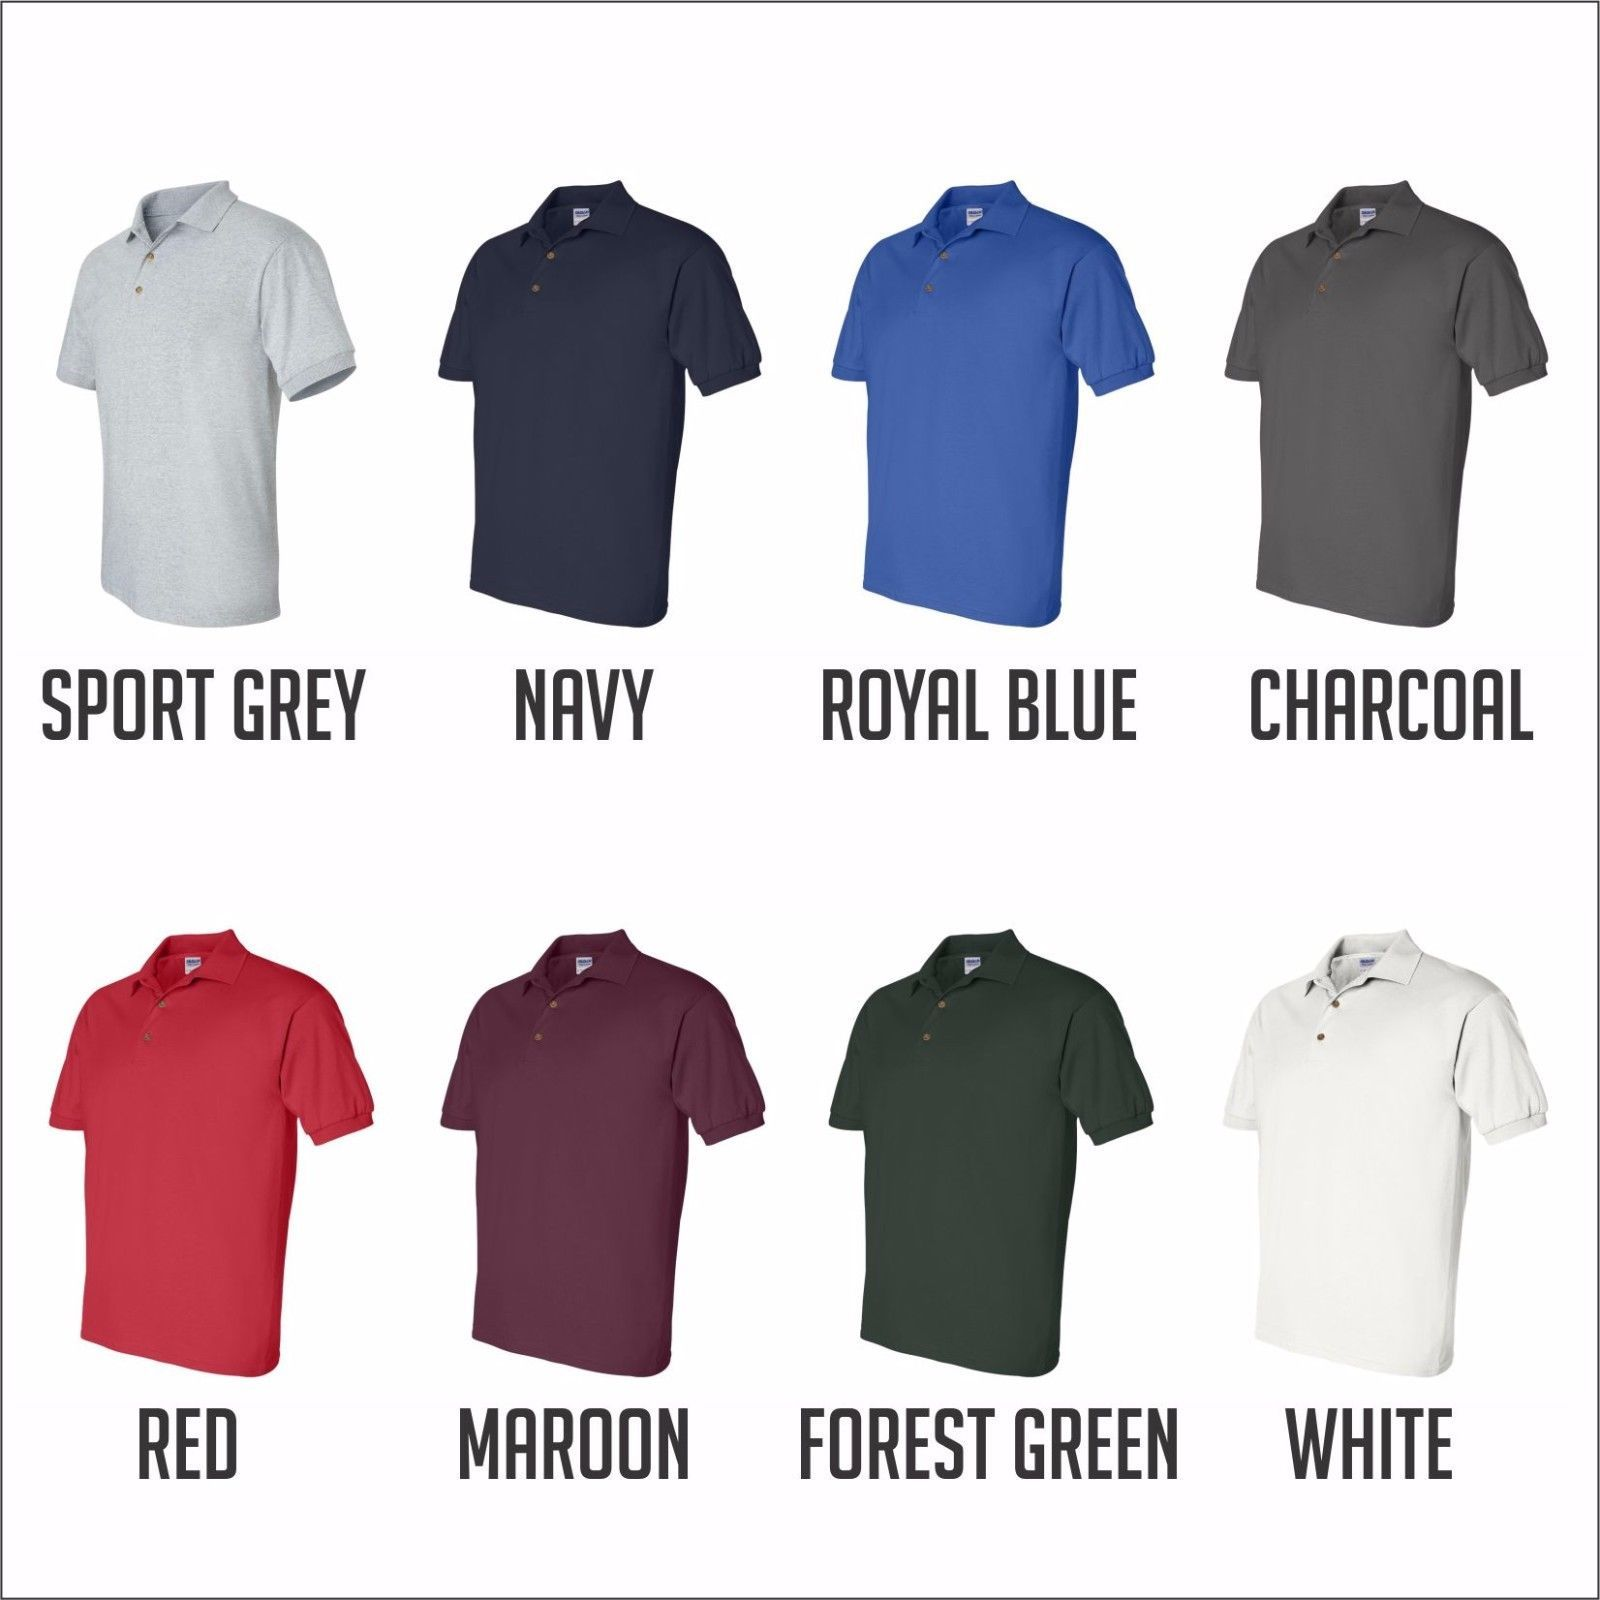 10 CUSTOM PERSONALIZED EMBROIDERED 100% Cotton Polo Shirt Business Uniform